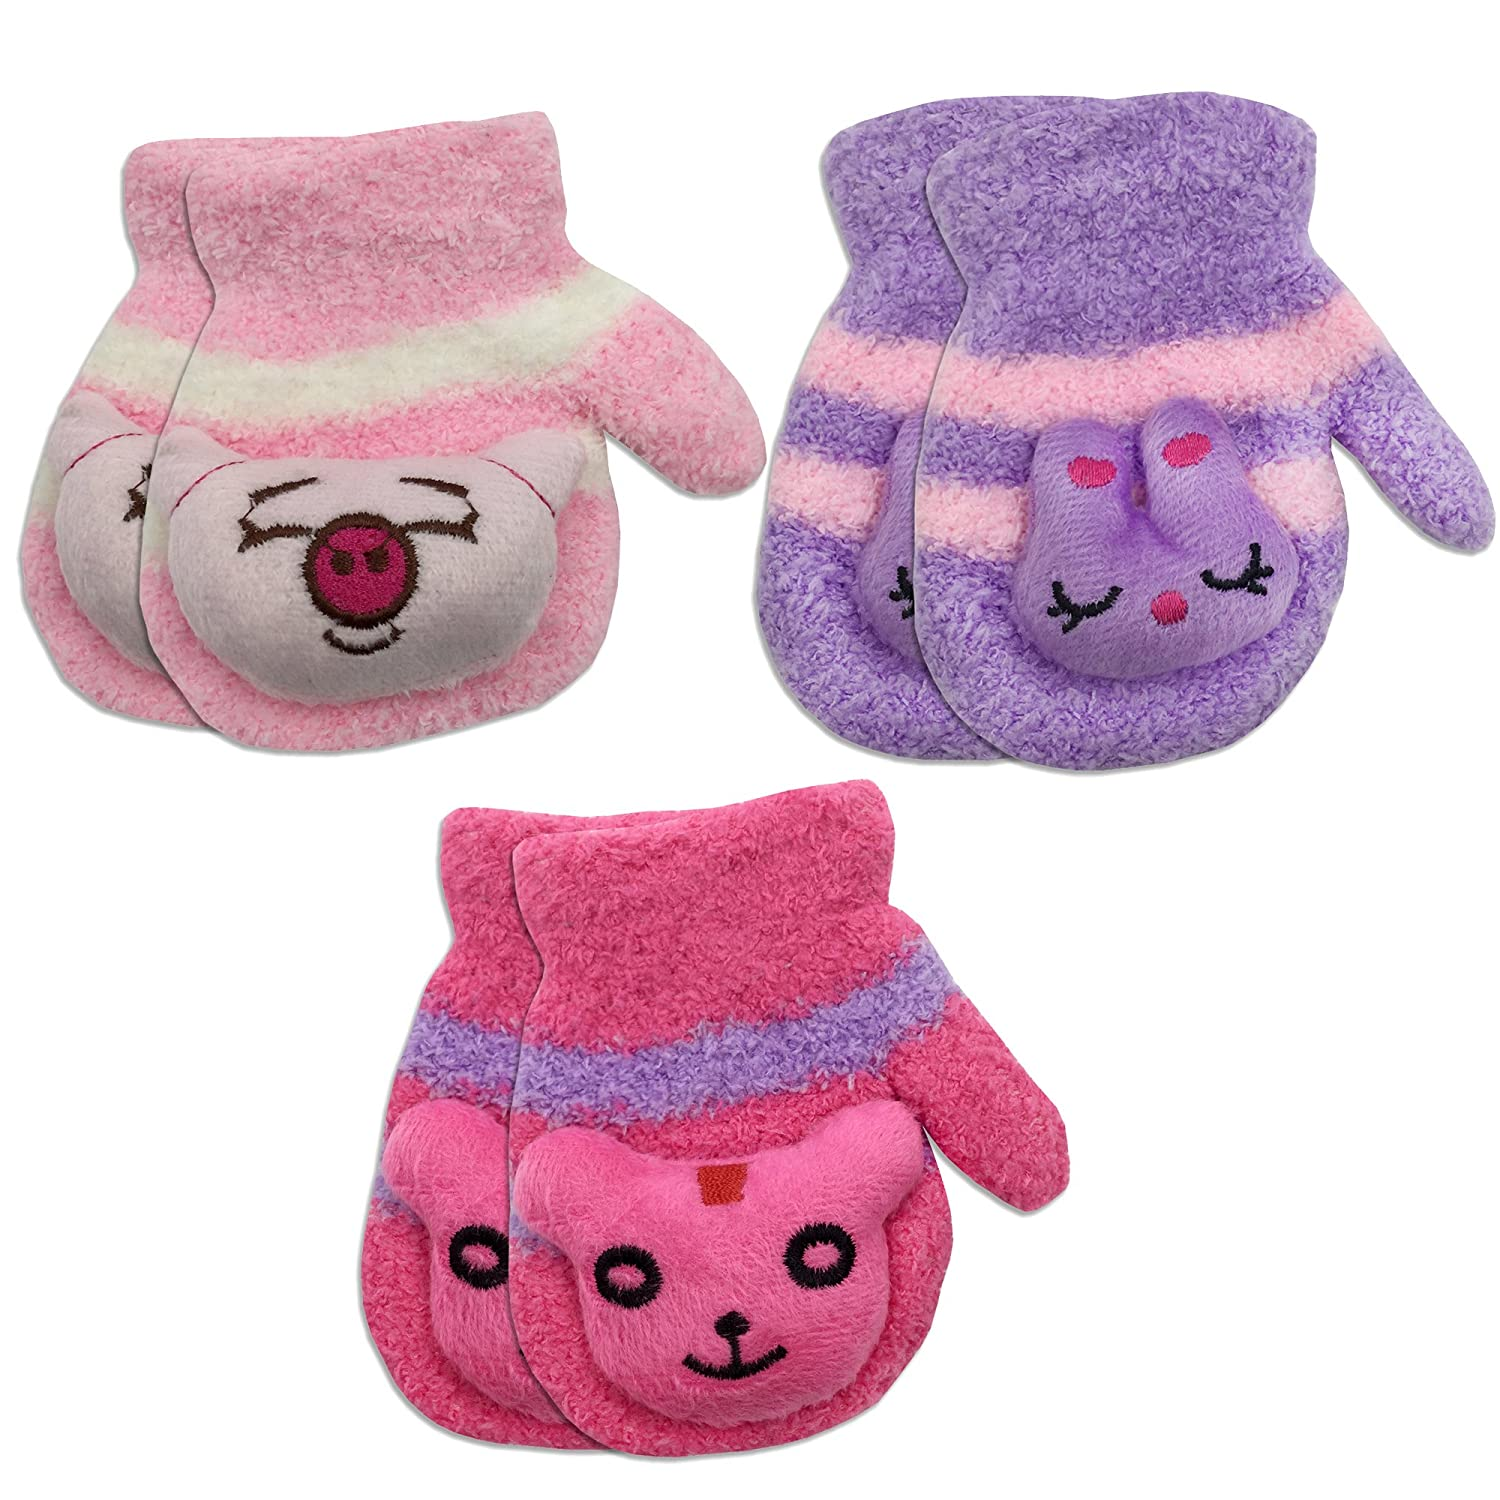 3 Pair Pack Toddler Baby Girls Warm Winter Mittens Gloves - Cute Fuzzy (Ages 1-3) 4521MP-RED-PNK-PUR-GIRLS-3PK